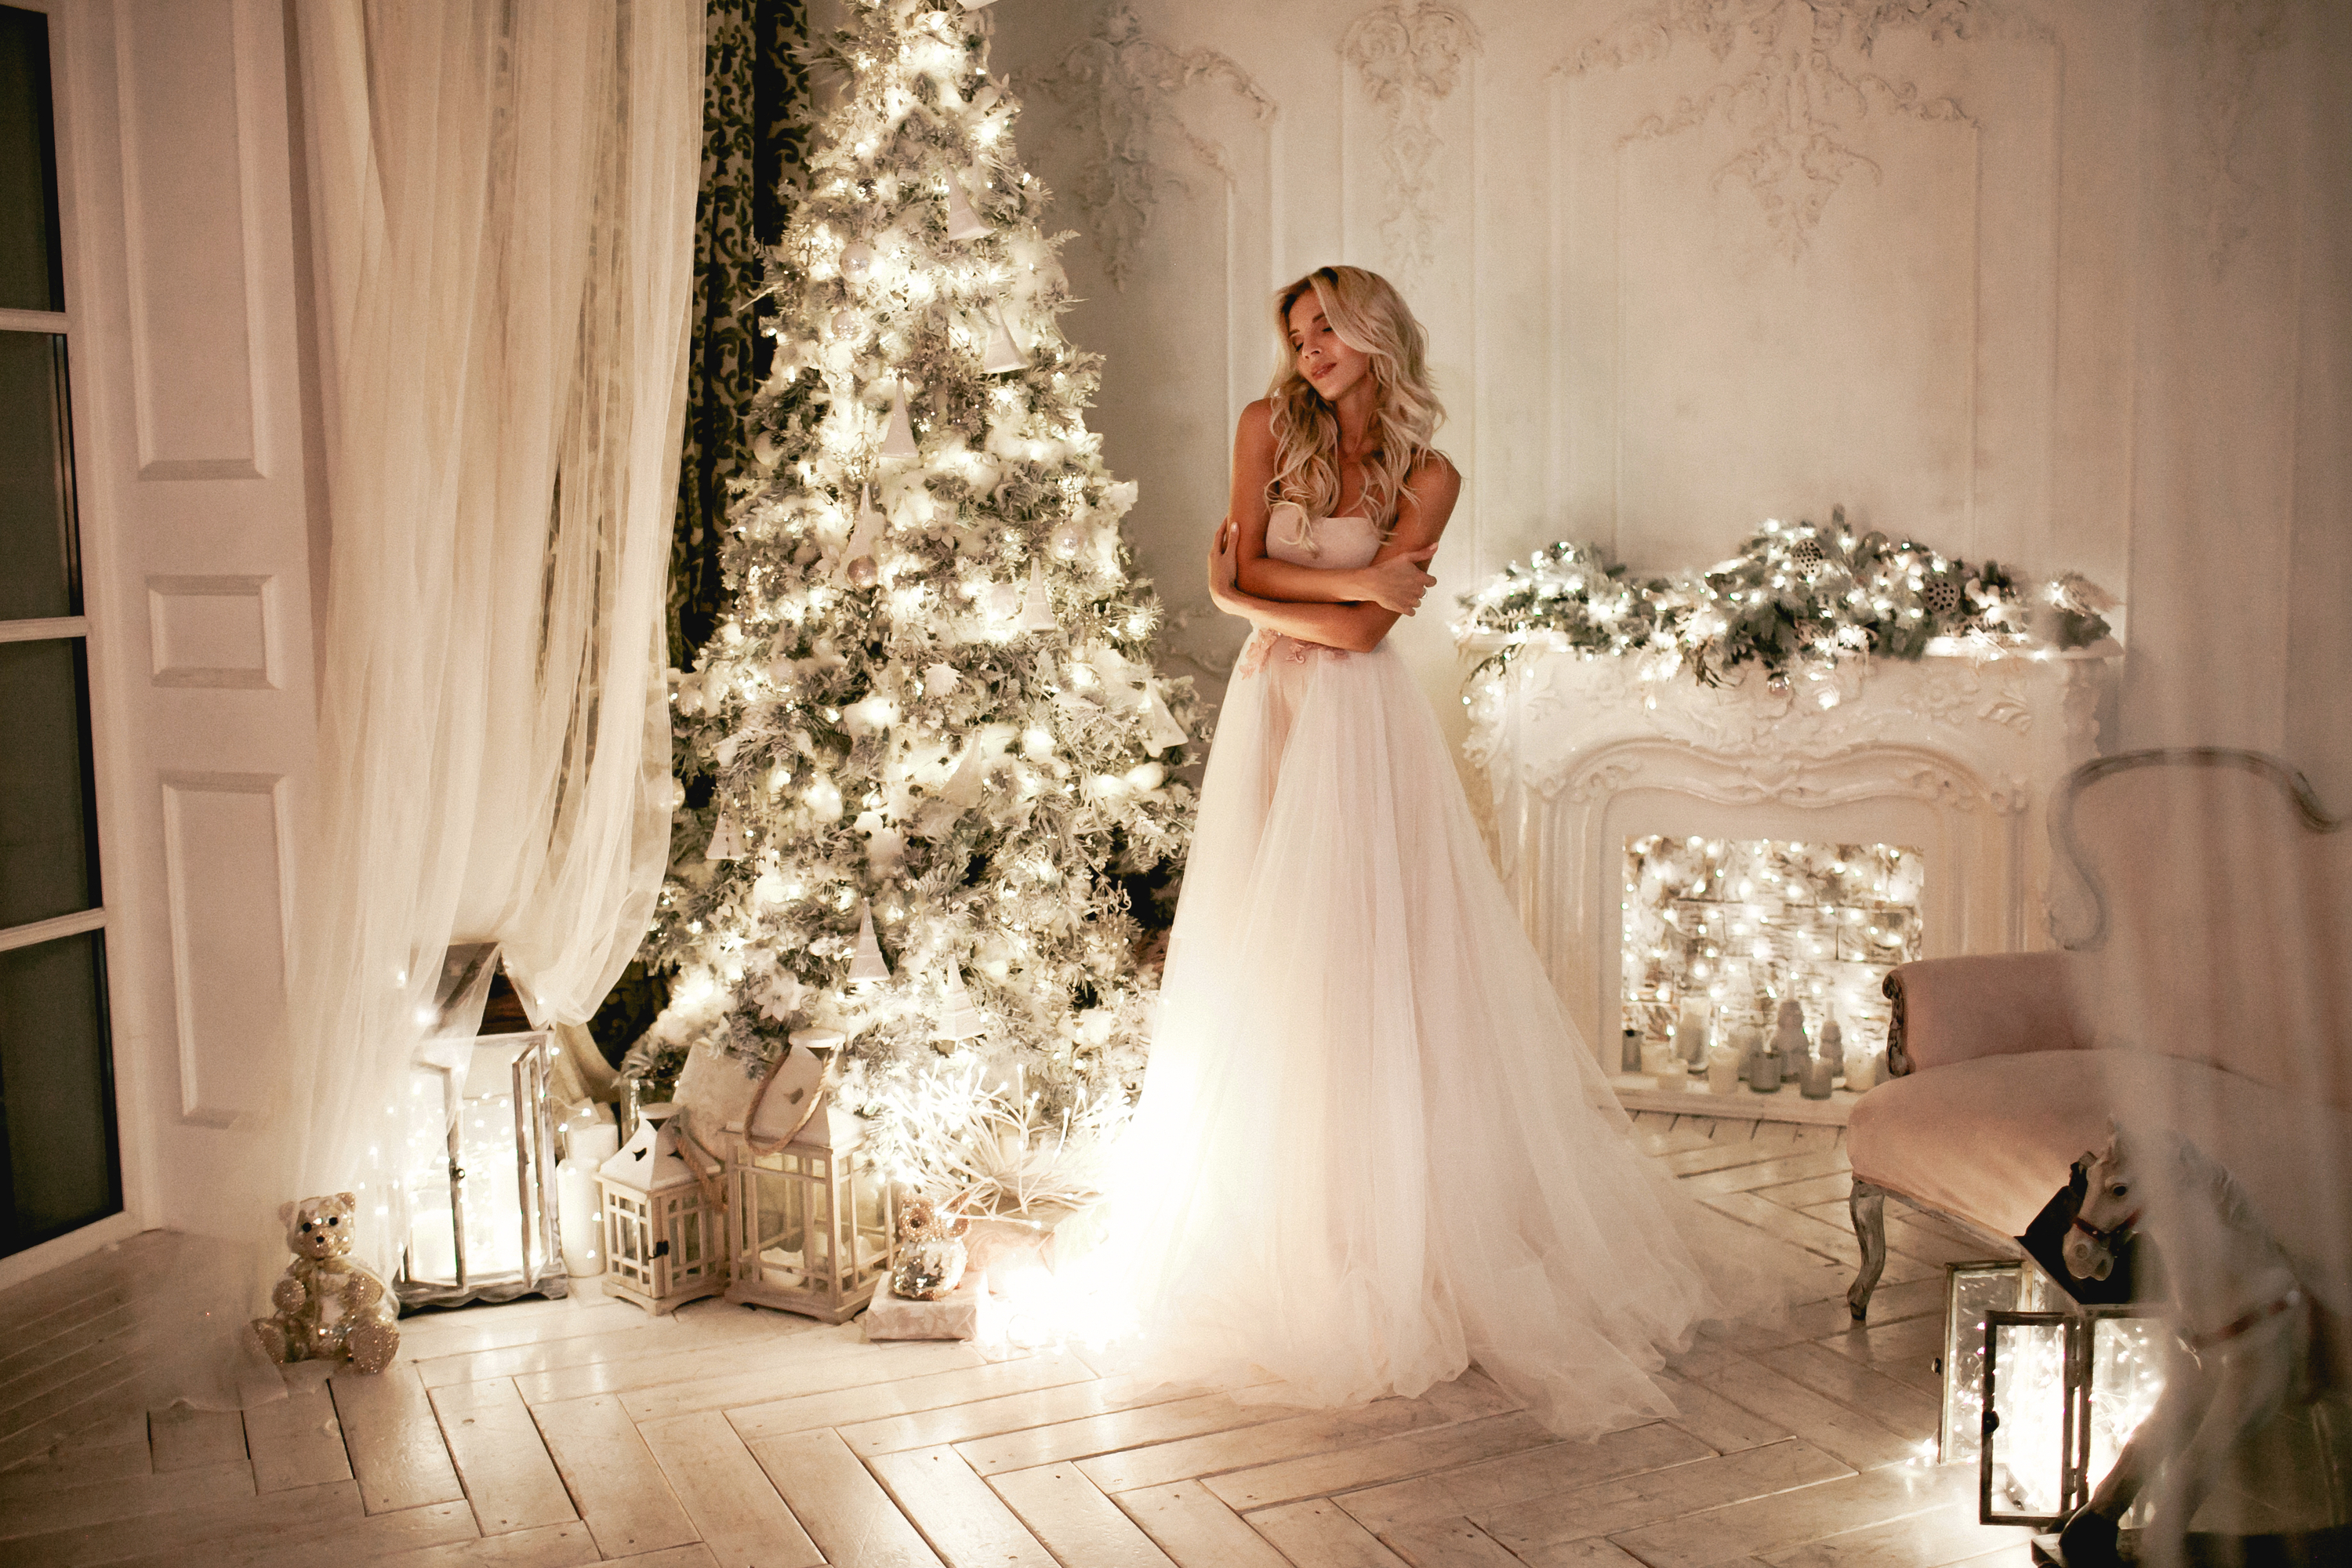 There is nothing more magical than a beautiful Christmas wedding. Check out these DIY Christmas wedding decorations. Everyone will love them.